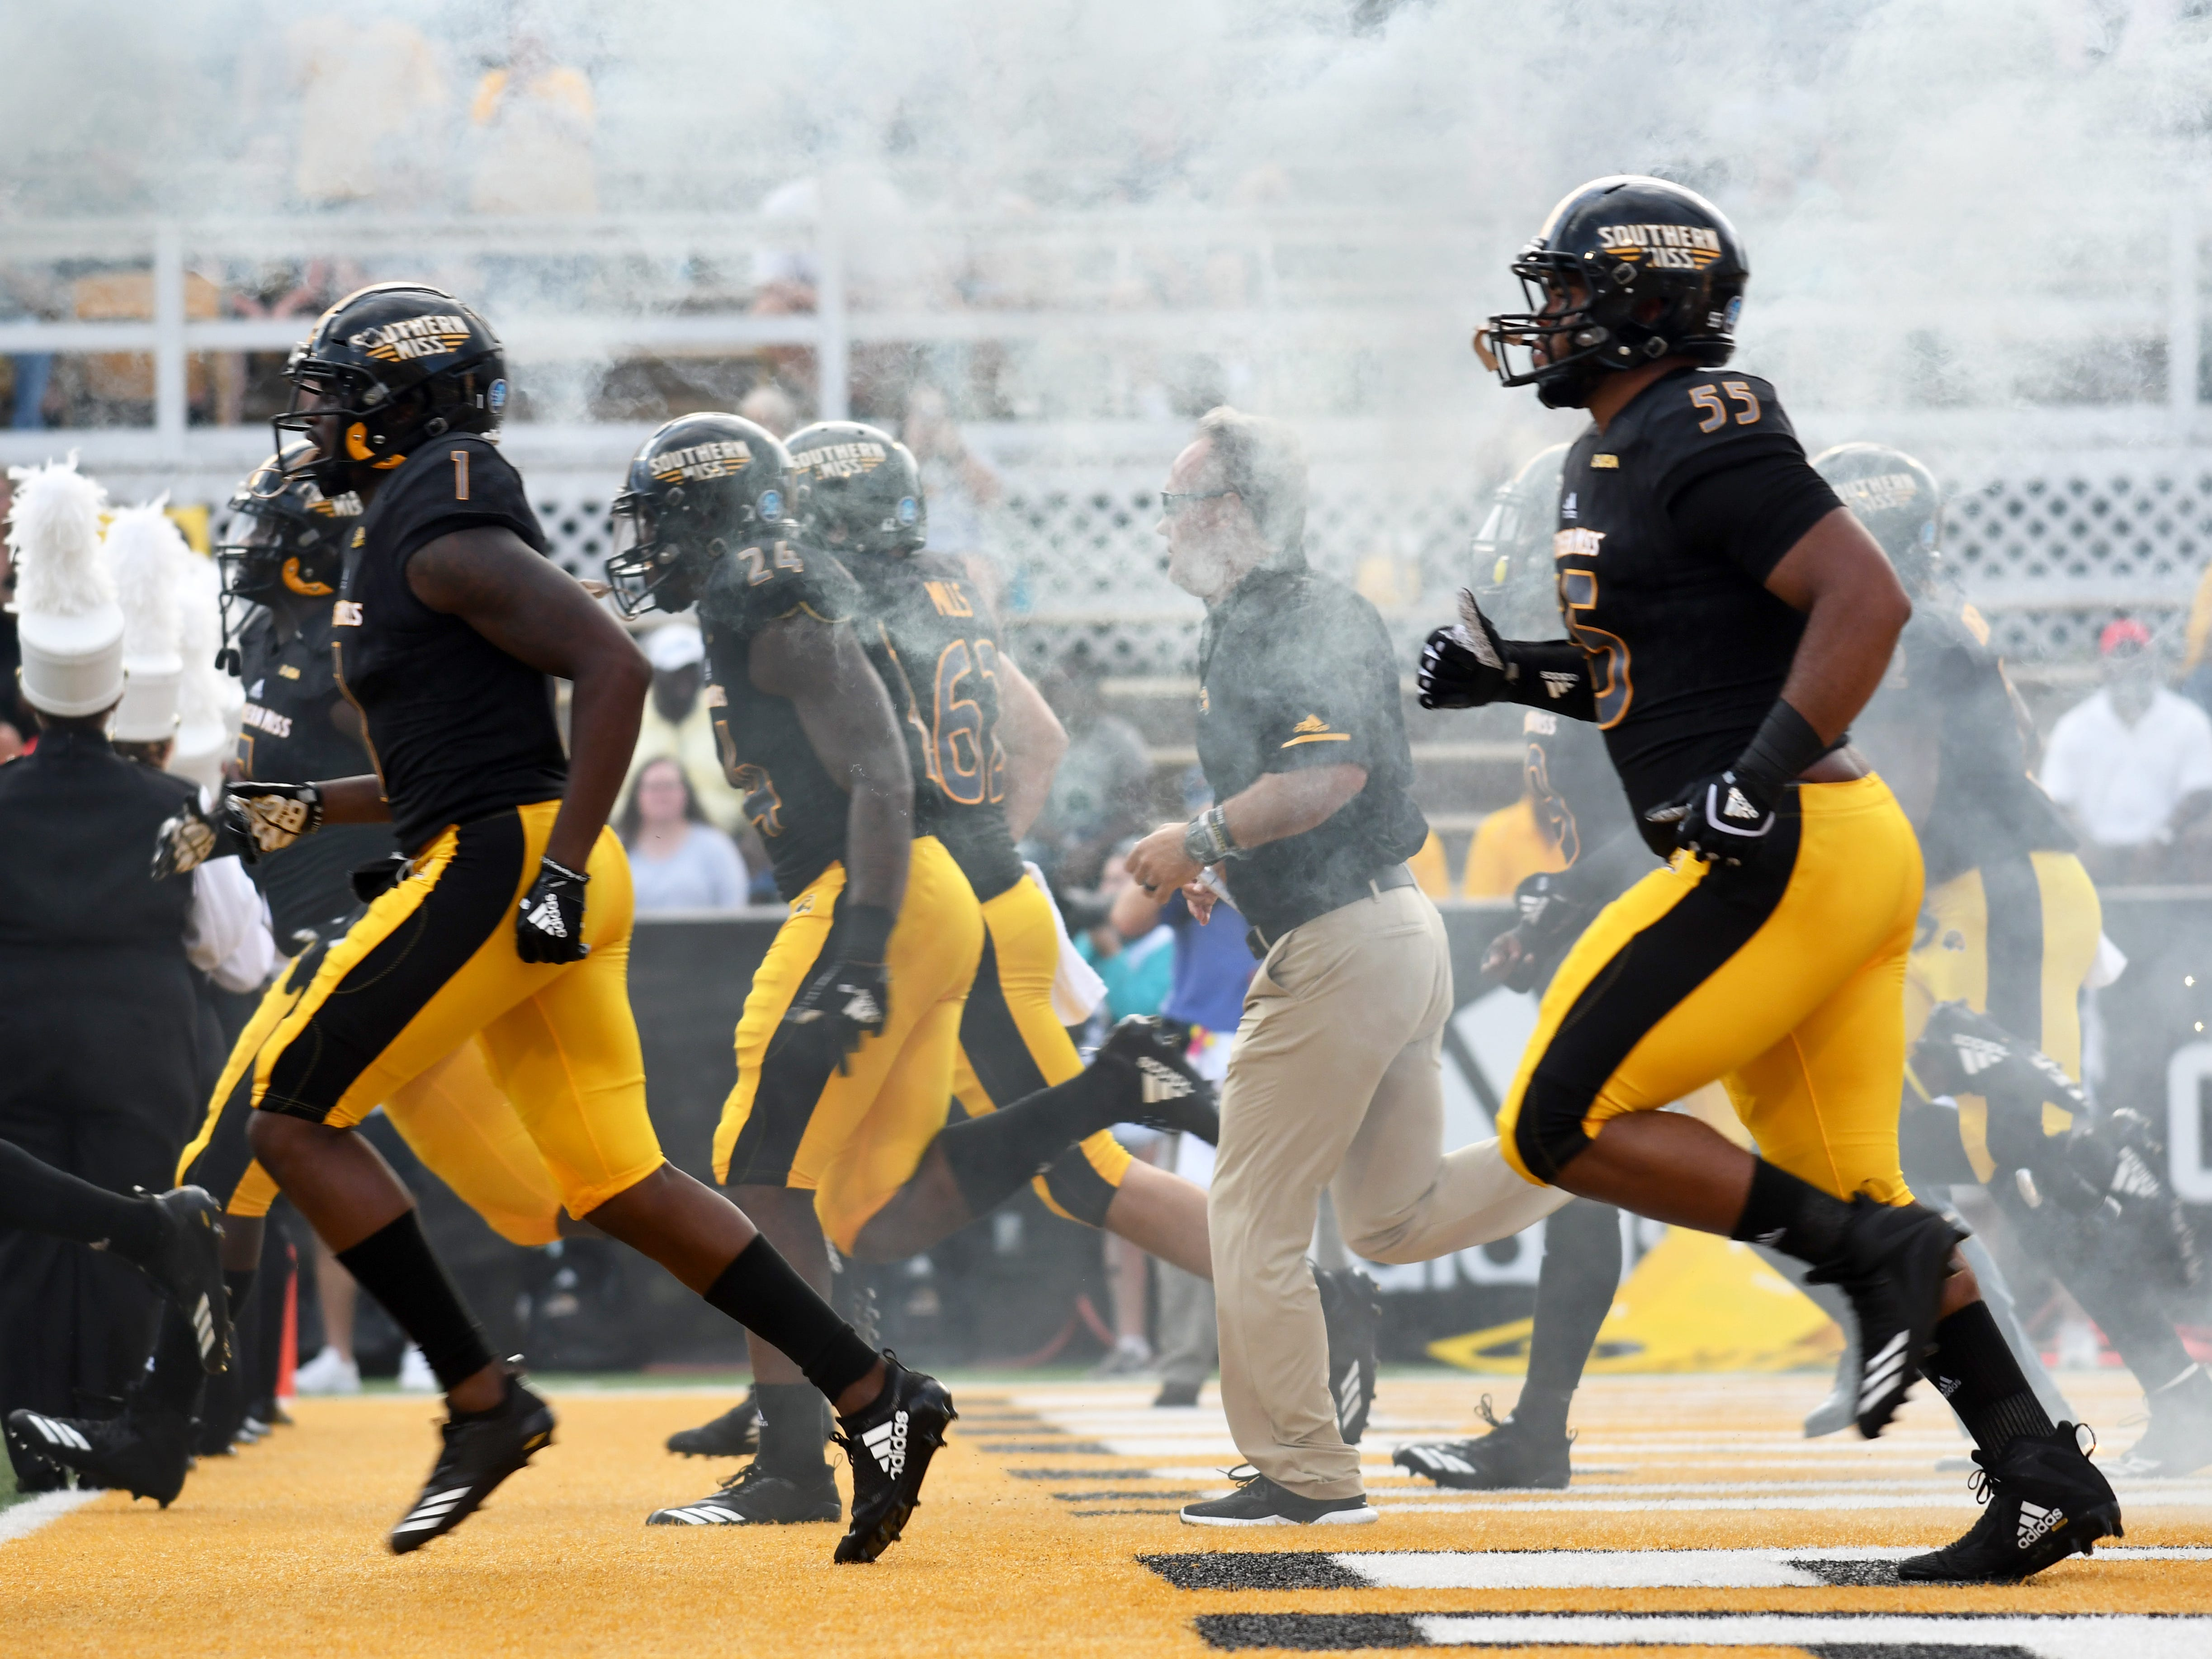 Southern Miss players and head coach Jay Hopson run onto the field at the start of a conference game against Rice at M.M. Roberts Stadium on Saturday, September 22, 2018.